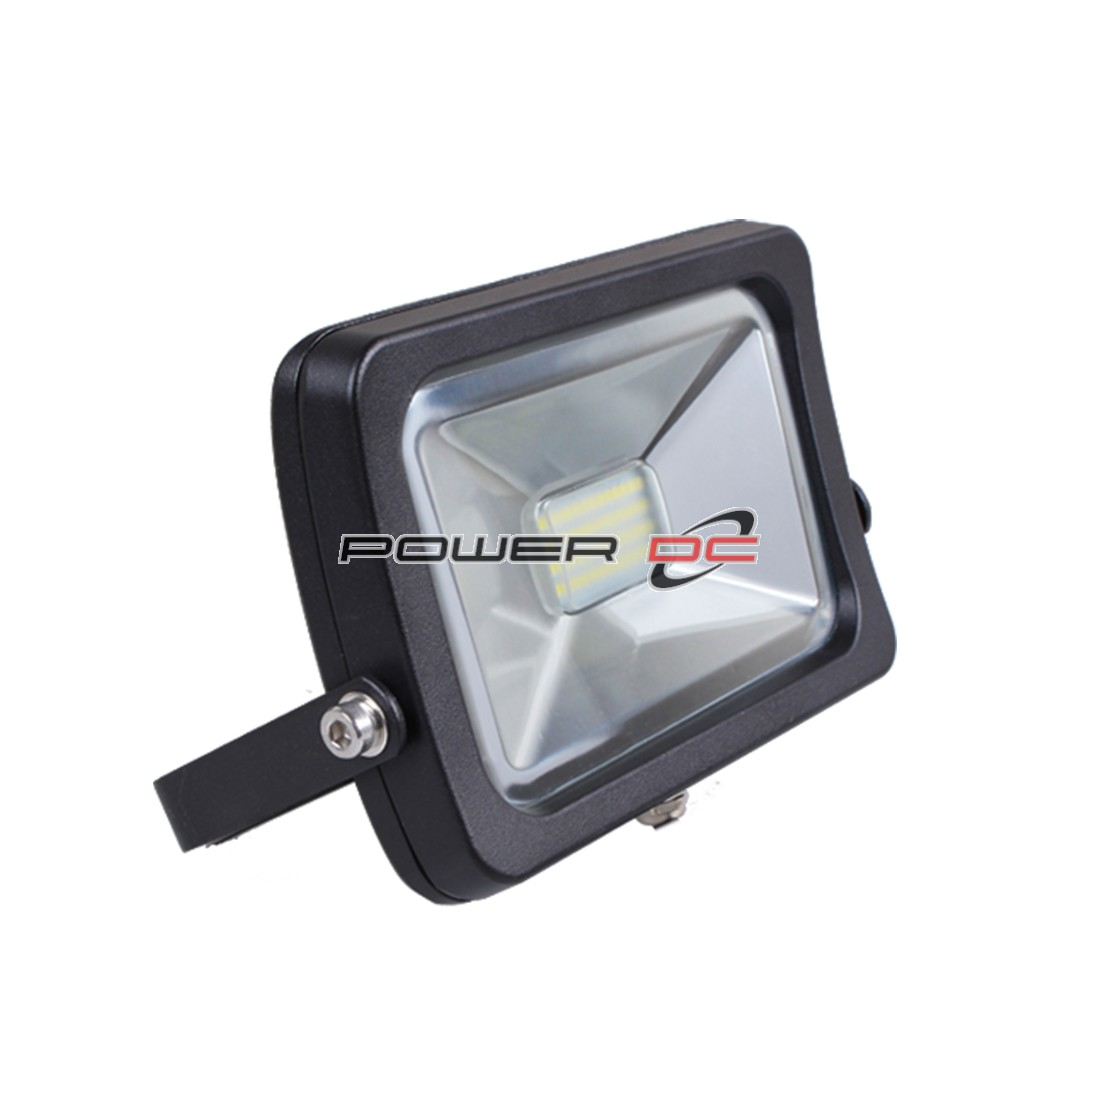 ULTRACHARGE WALL MOUNT LED FLOOD LIGHT 30WATT BLACK